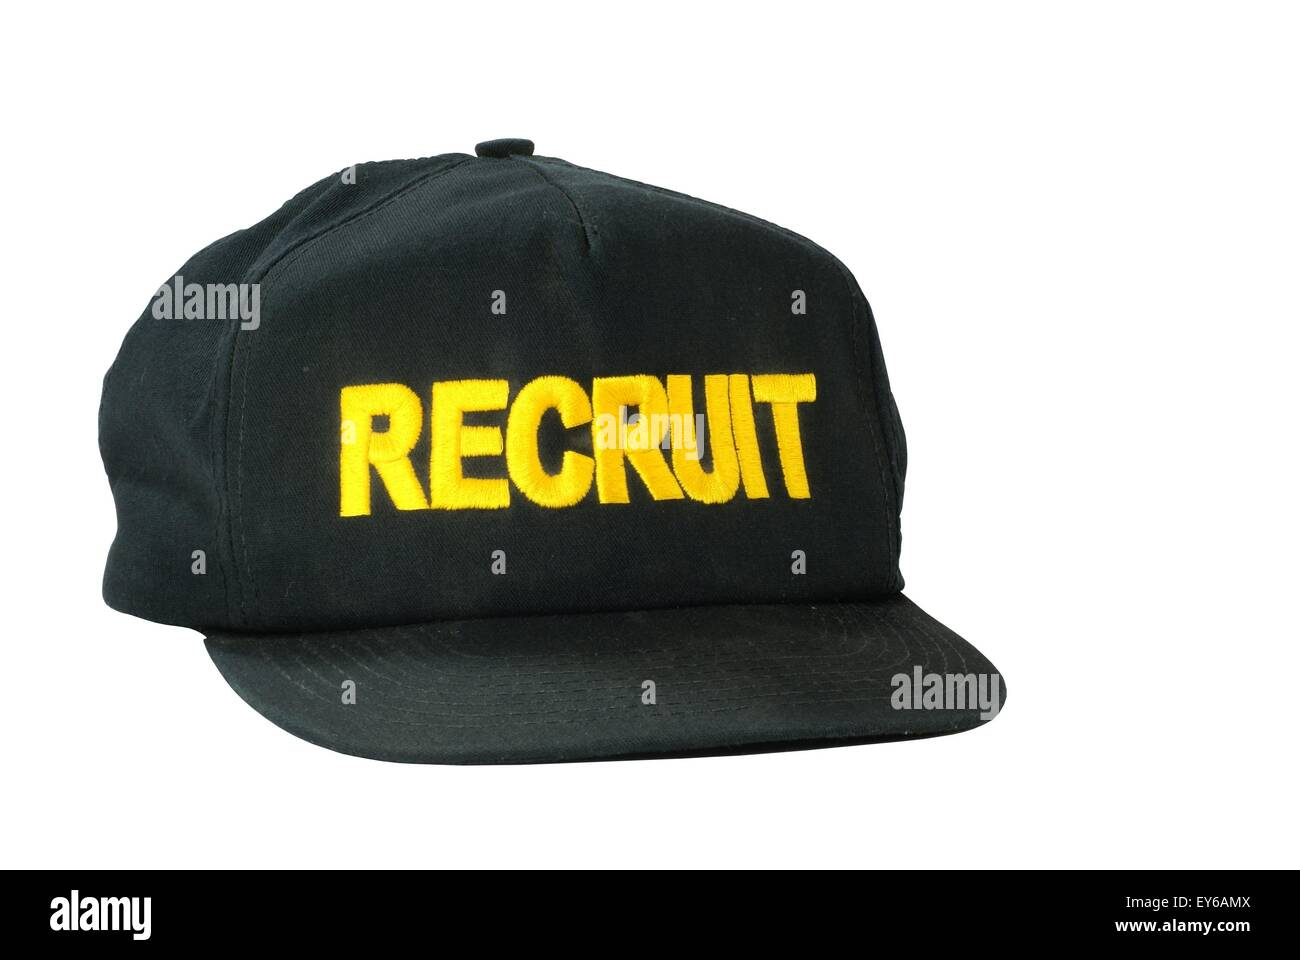 Isolated Military recruit baseball style cap with embroidered letters. - Stock Image